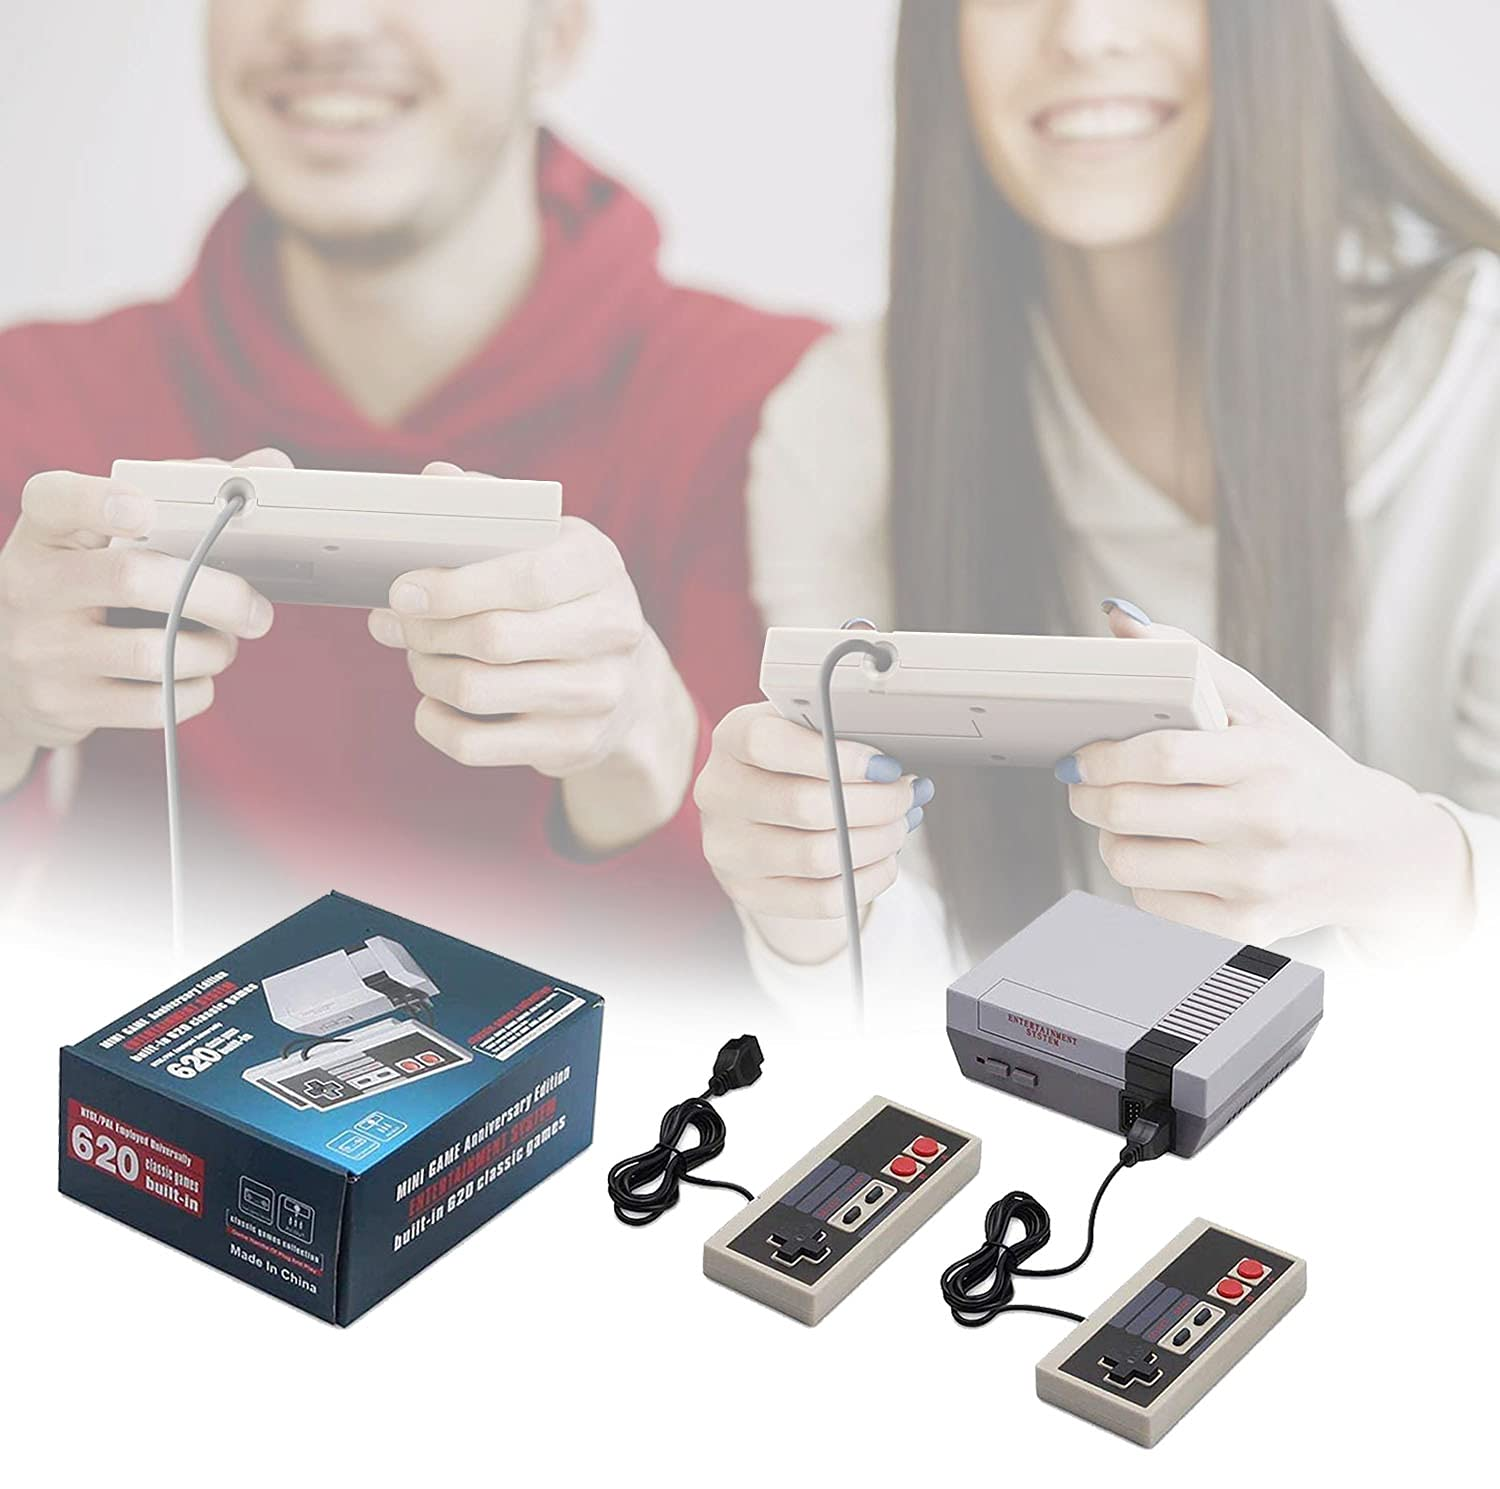 Universal Minions Classic Handheld Game Console,Retro Game Console Built-in 620 Game Handheld Game Console, Video Game Player Console for Family TV Video (Gray)